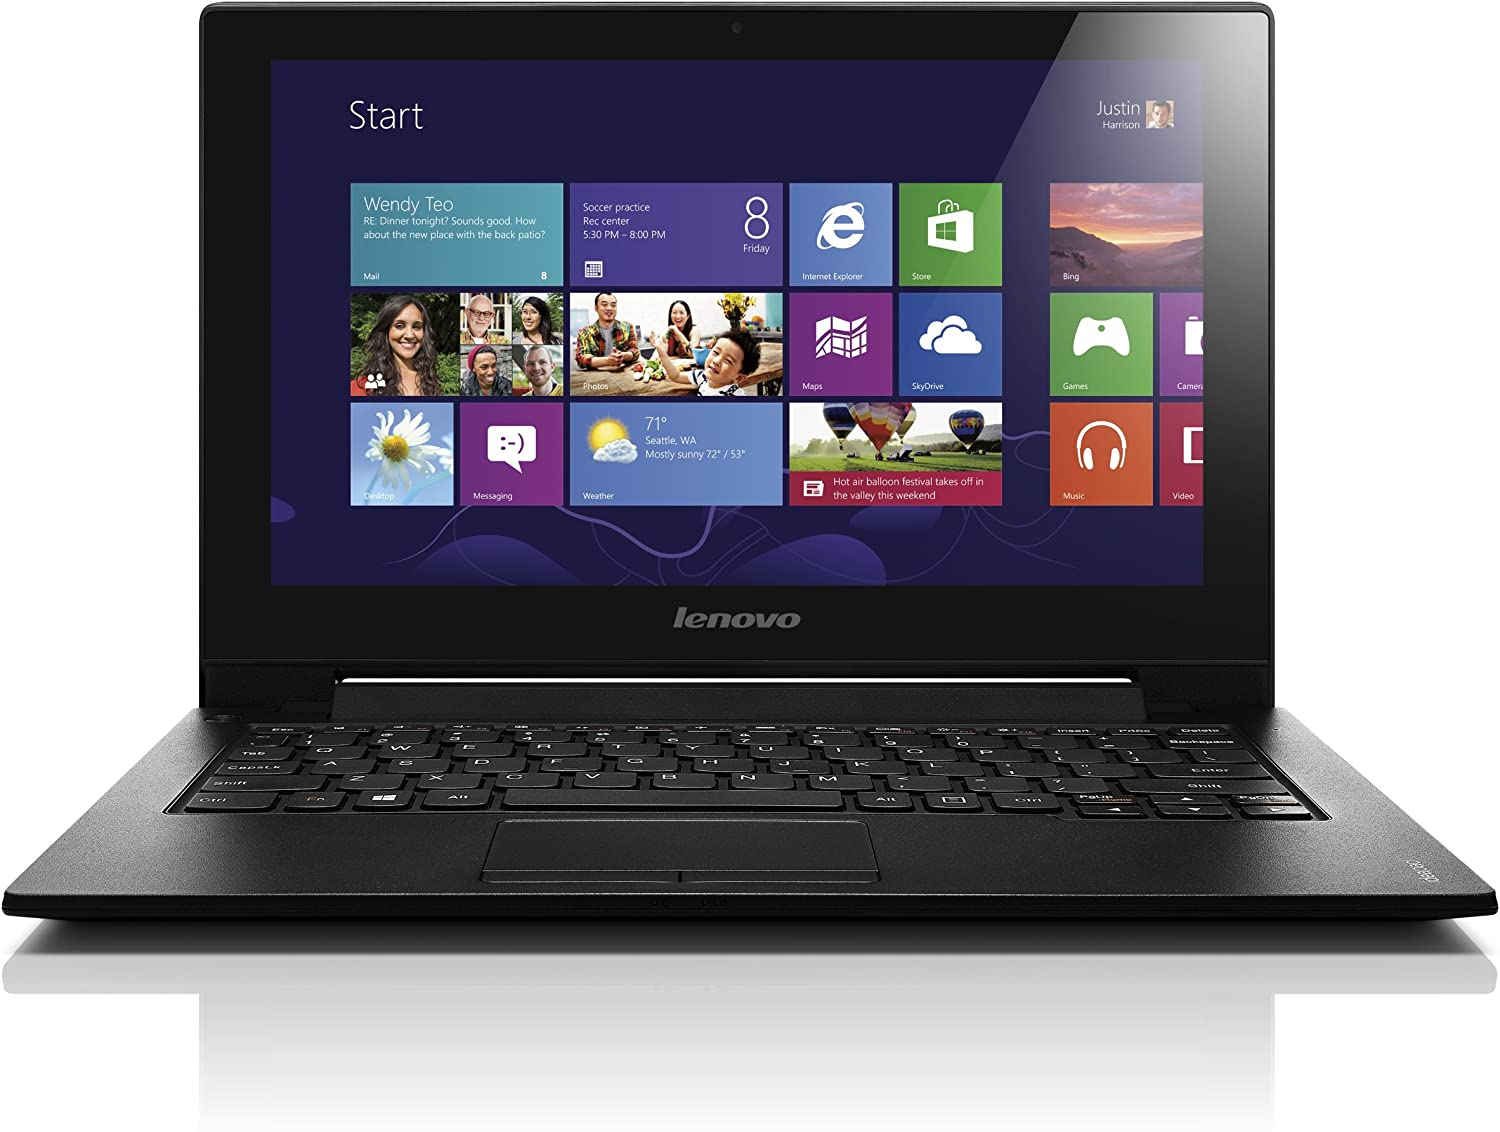 Lenovo IdeaPad S210 59387503 Touchscreen Laptop (Windows 8, Intel Pentium 2127U 1.9 GHz, 11.6